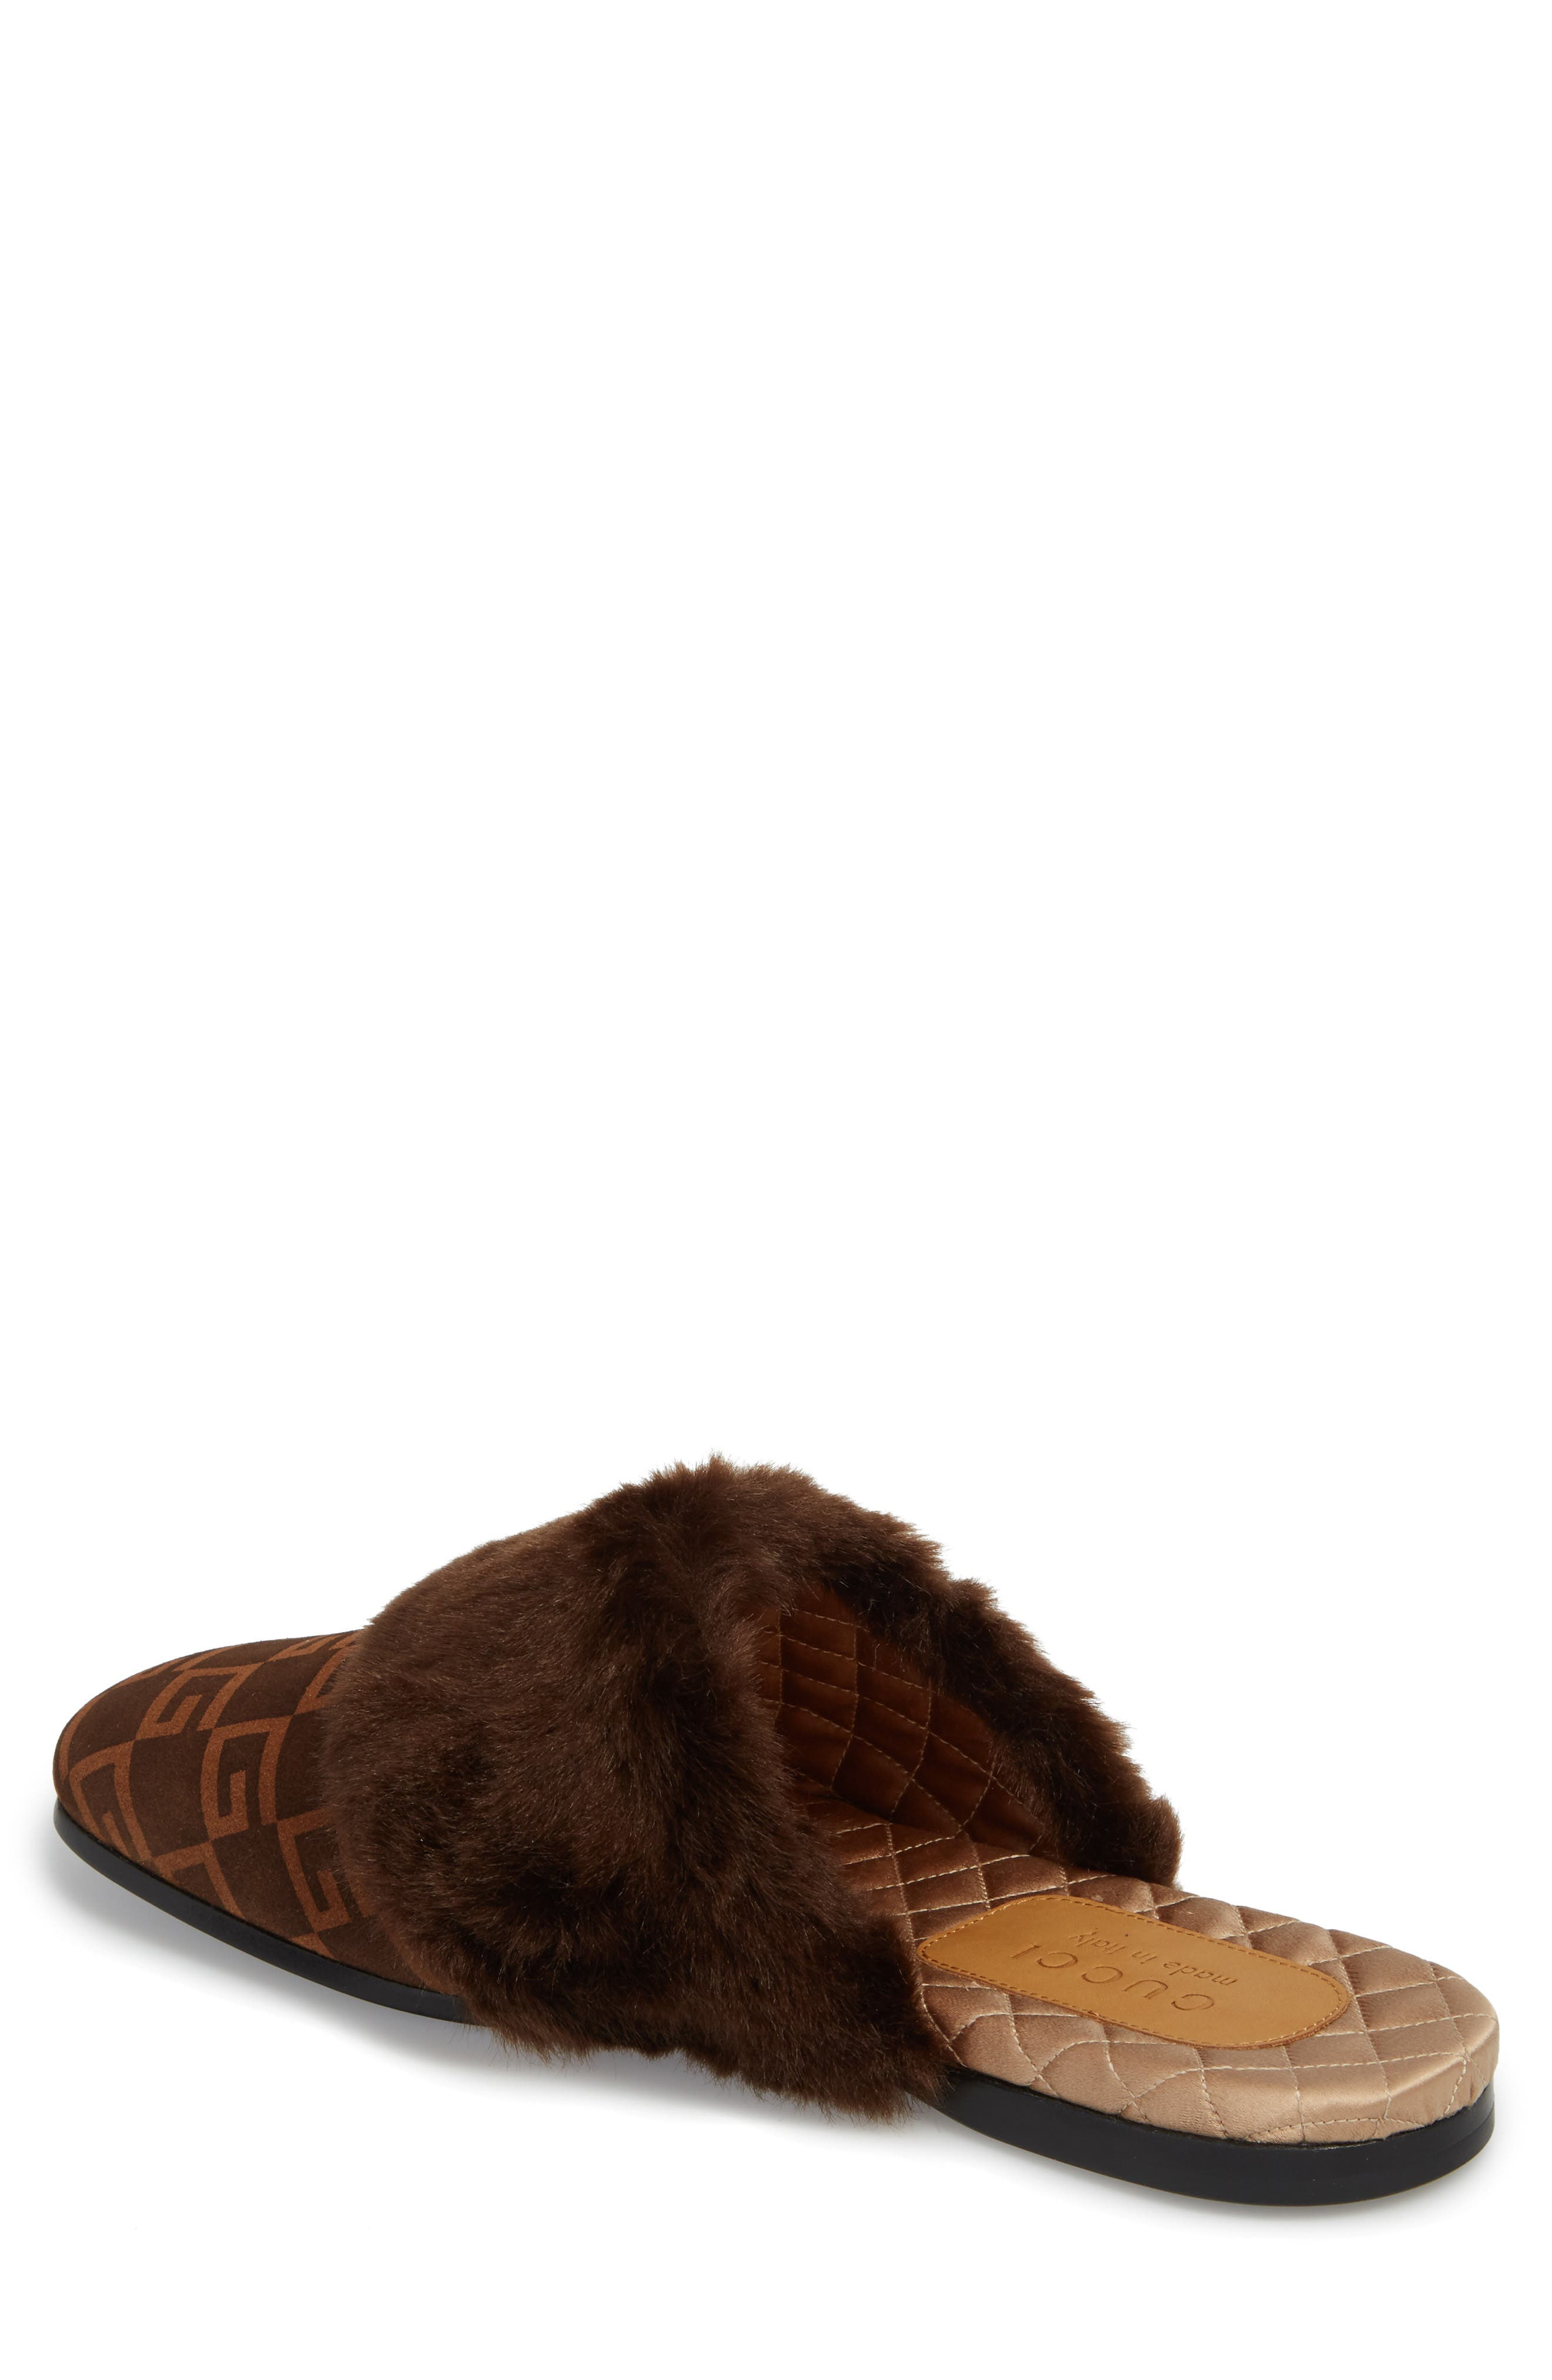 Lawrence Square-G Faux Fur Slipper,                             Alternate thumbnail 2, color,                             Brown/ Sigaro